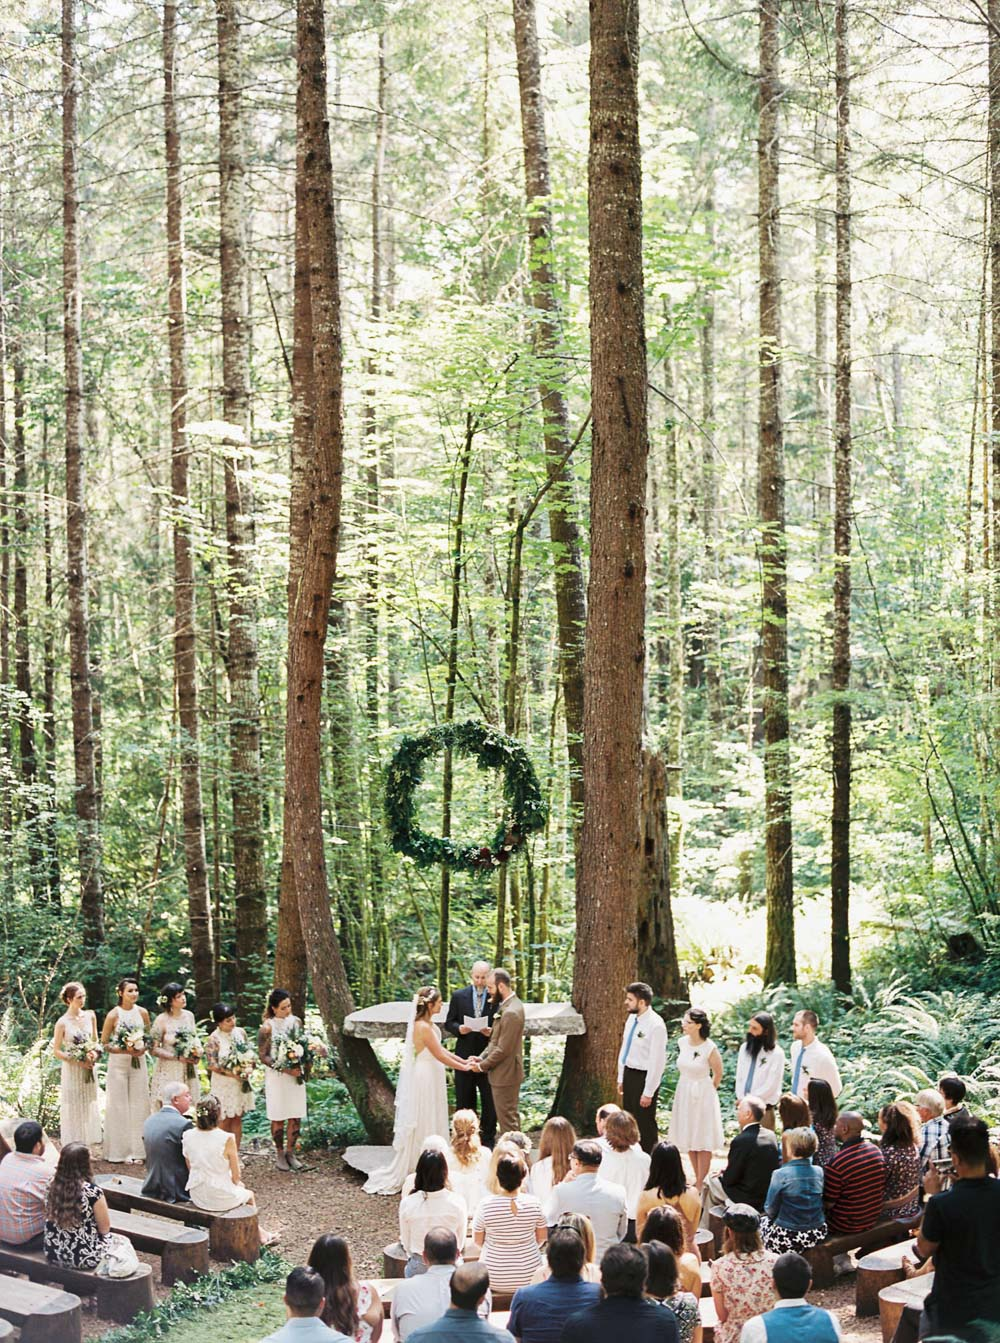 Wellspring Spa Wedding ceremony at Mt. Rainier captured by Seattle Wedding Photographer Anna Peters